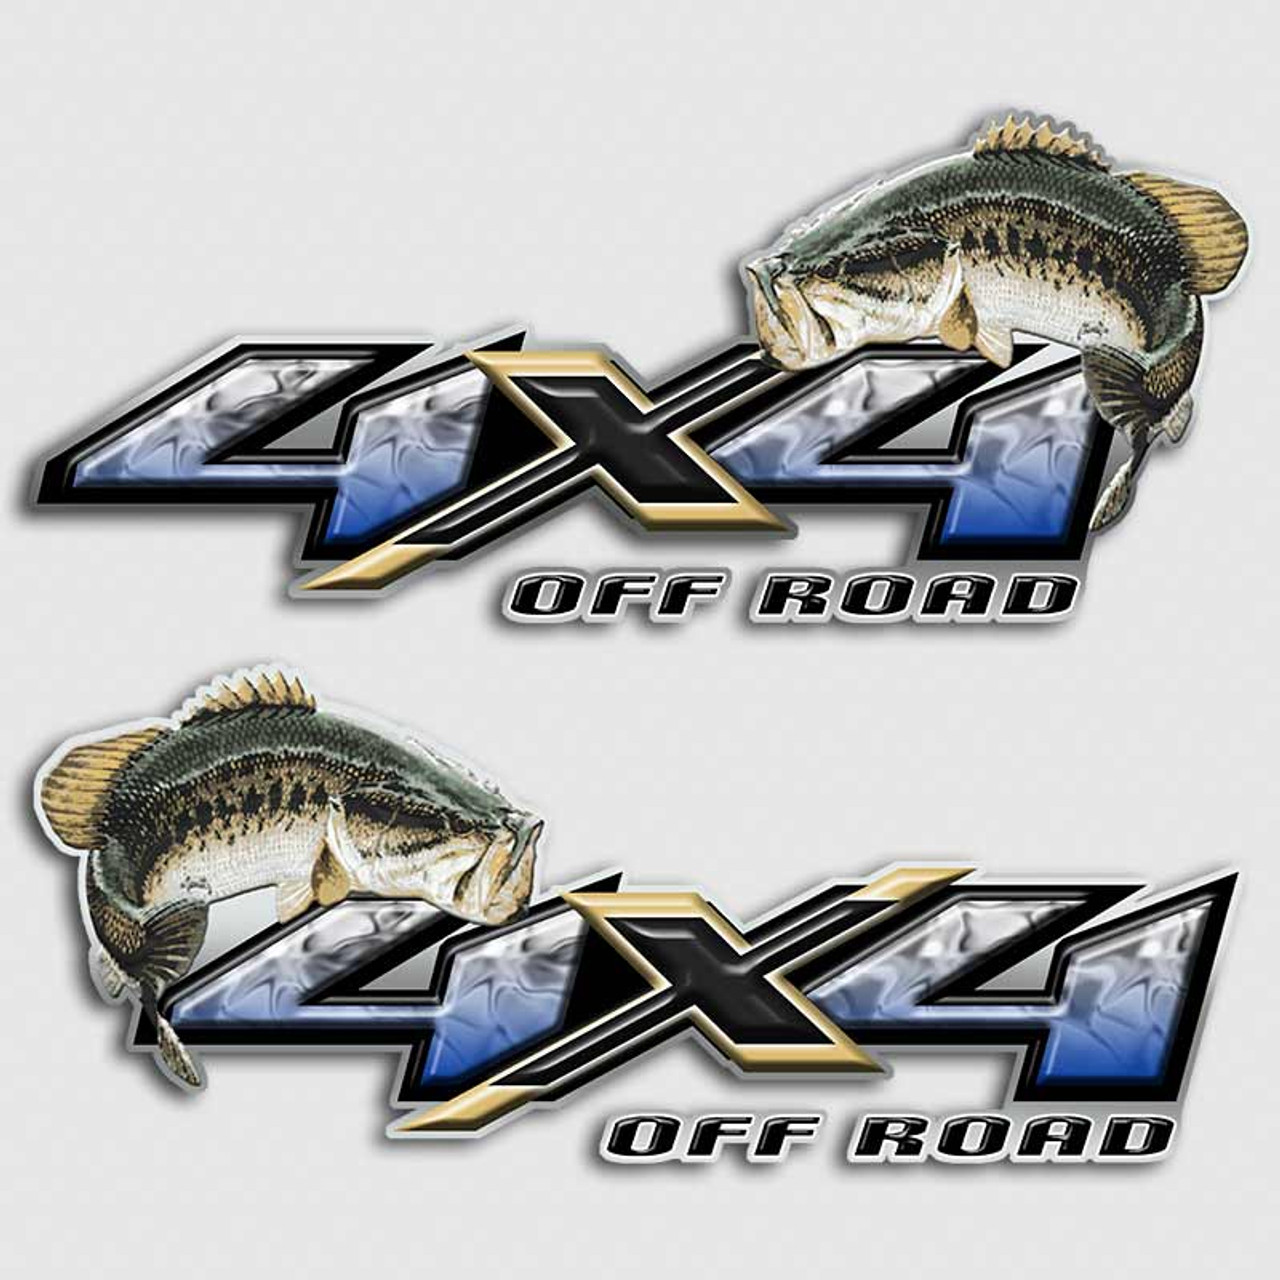 Bass fishing 4x4 truck decals off road silverado fish for Blue bass fish